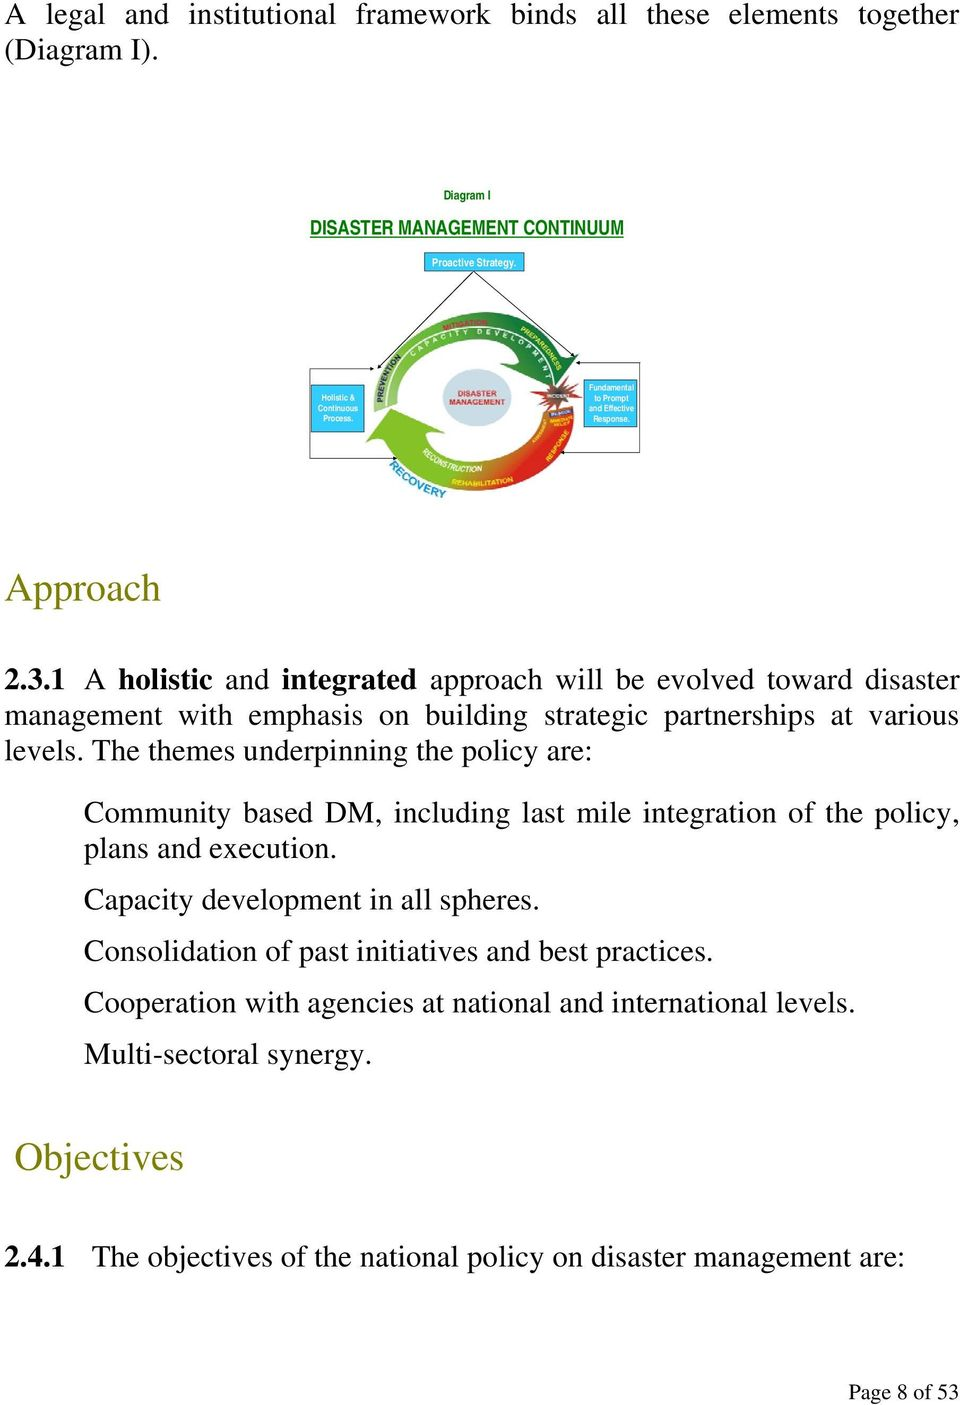 1 A holistic and integrated approach will be evolved toward disaster management with emphasis on building strategic partnerships at various levels.